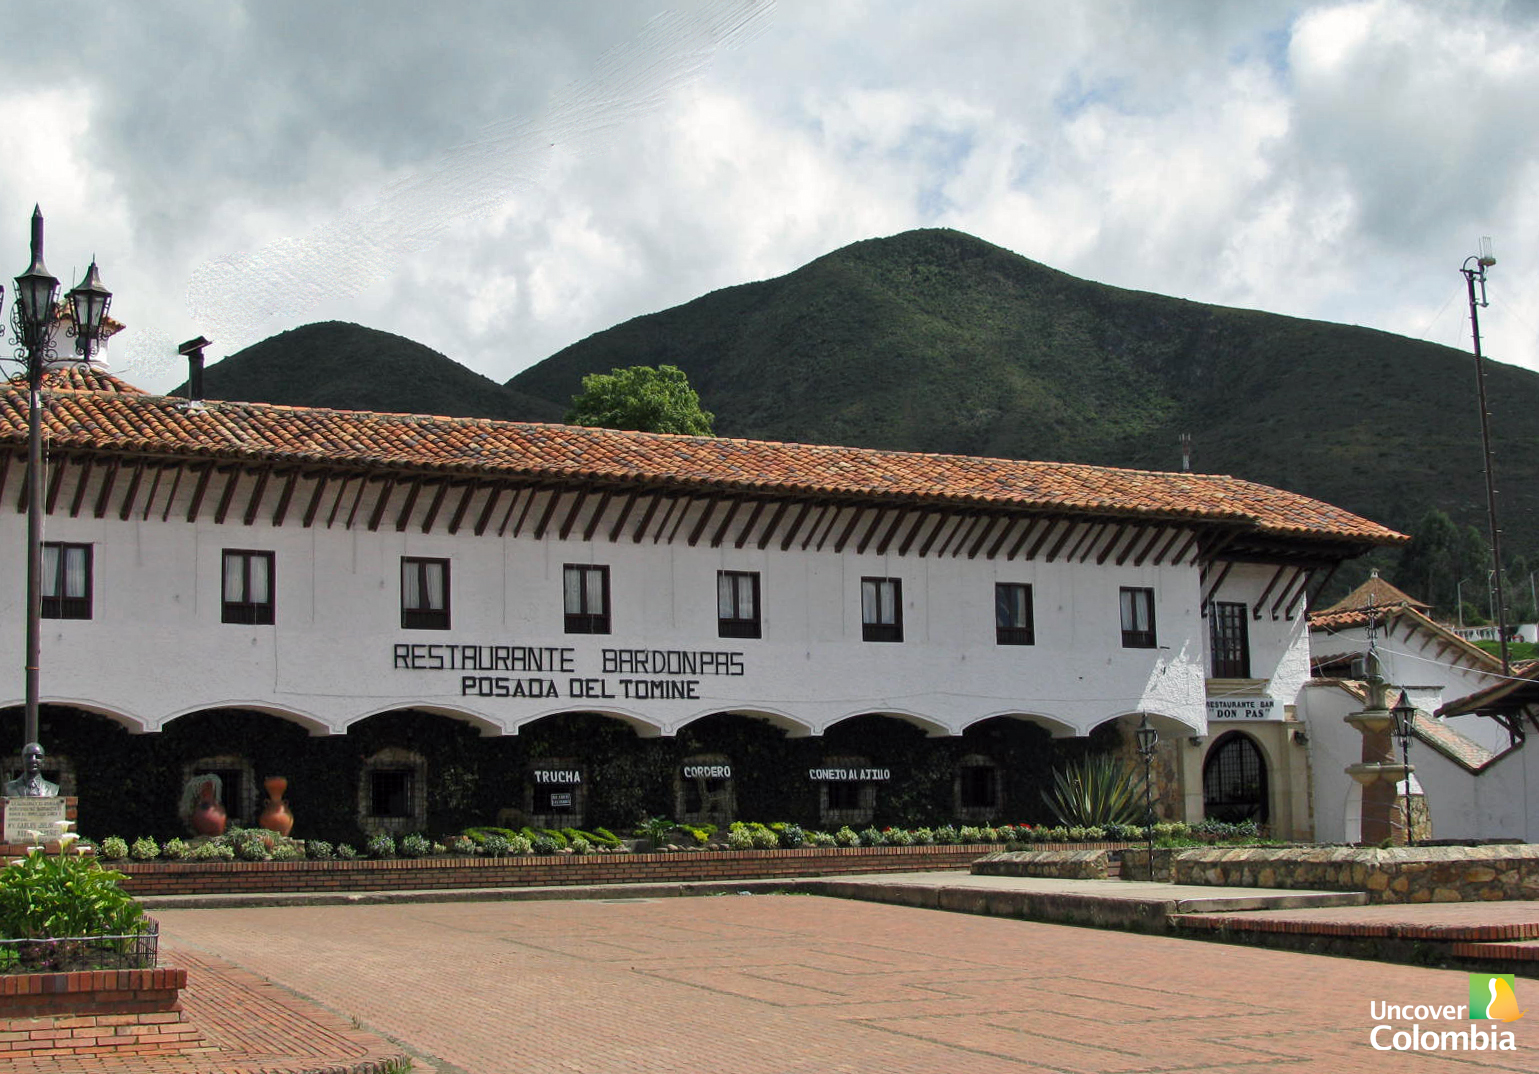 Guatavita - One of the popular restaurants and hotels in the town